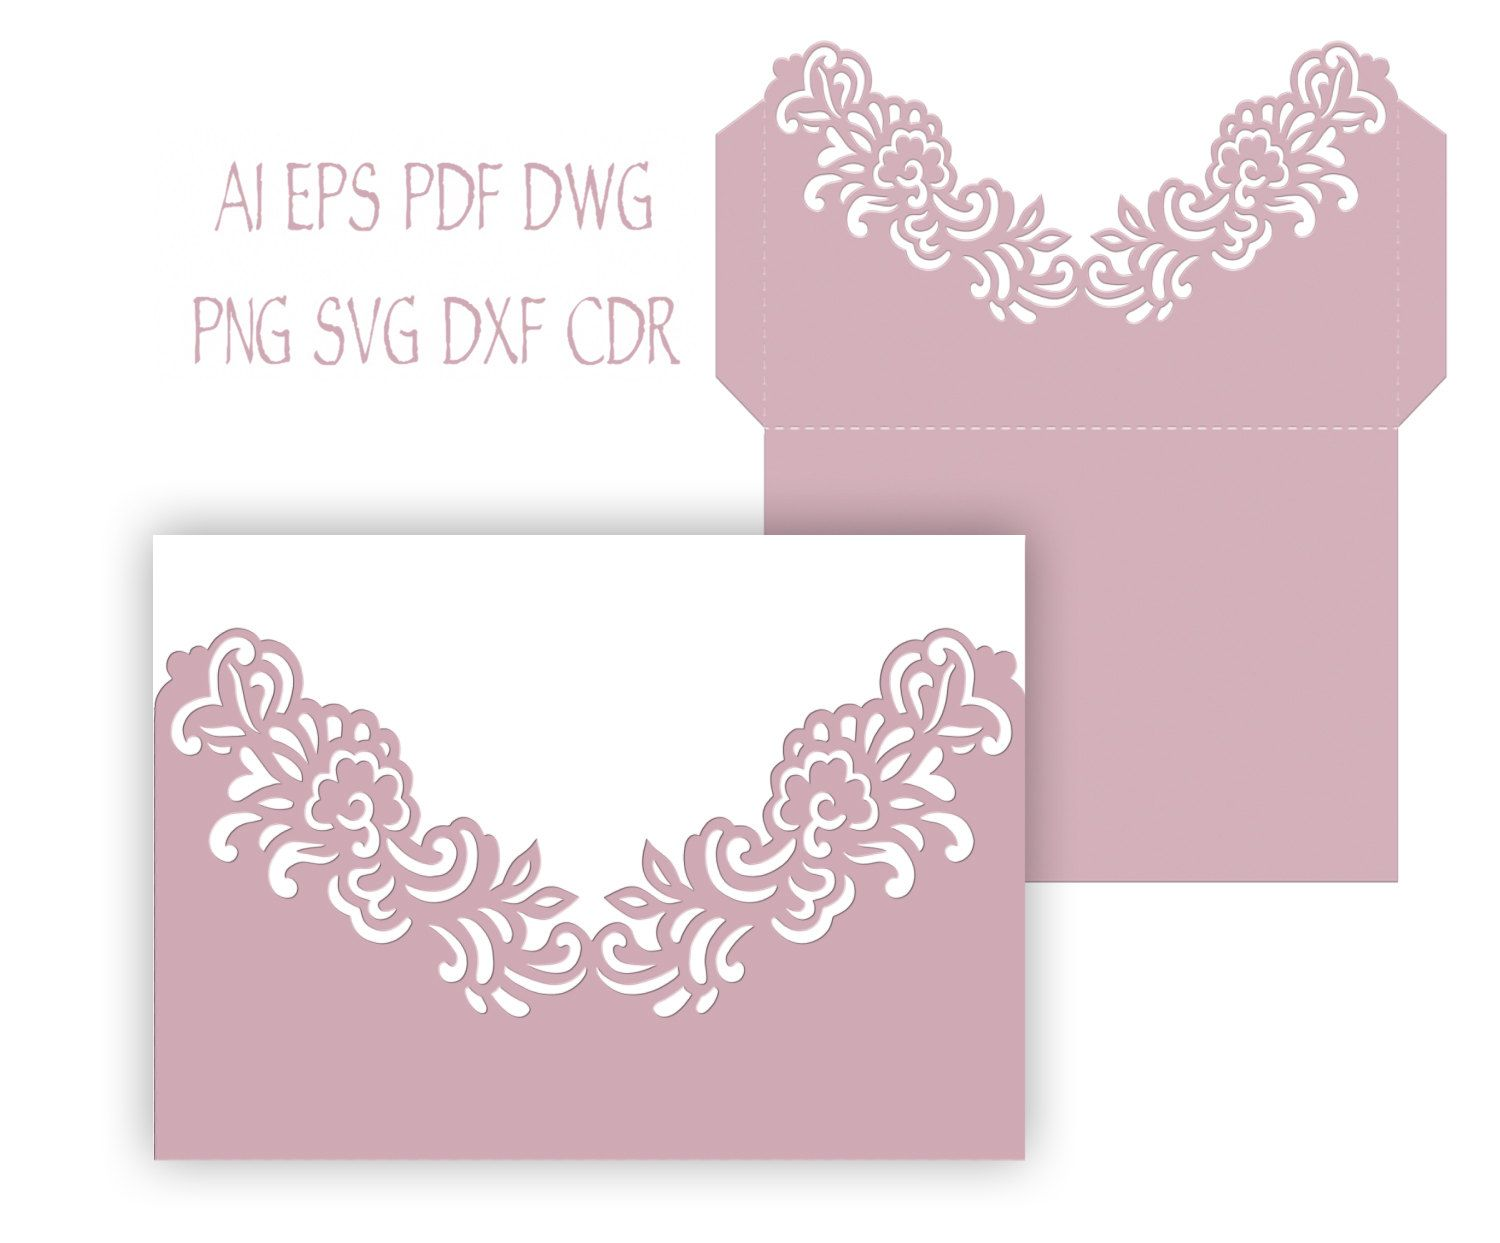 5x73939 floral wedding invitation pocket envelope svg for Pocket wedding invitations cricut